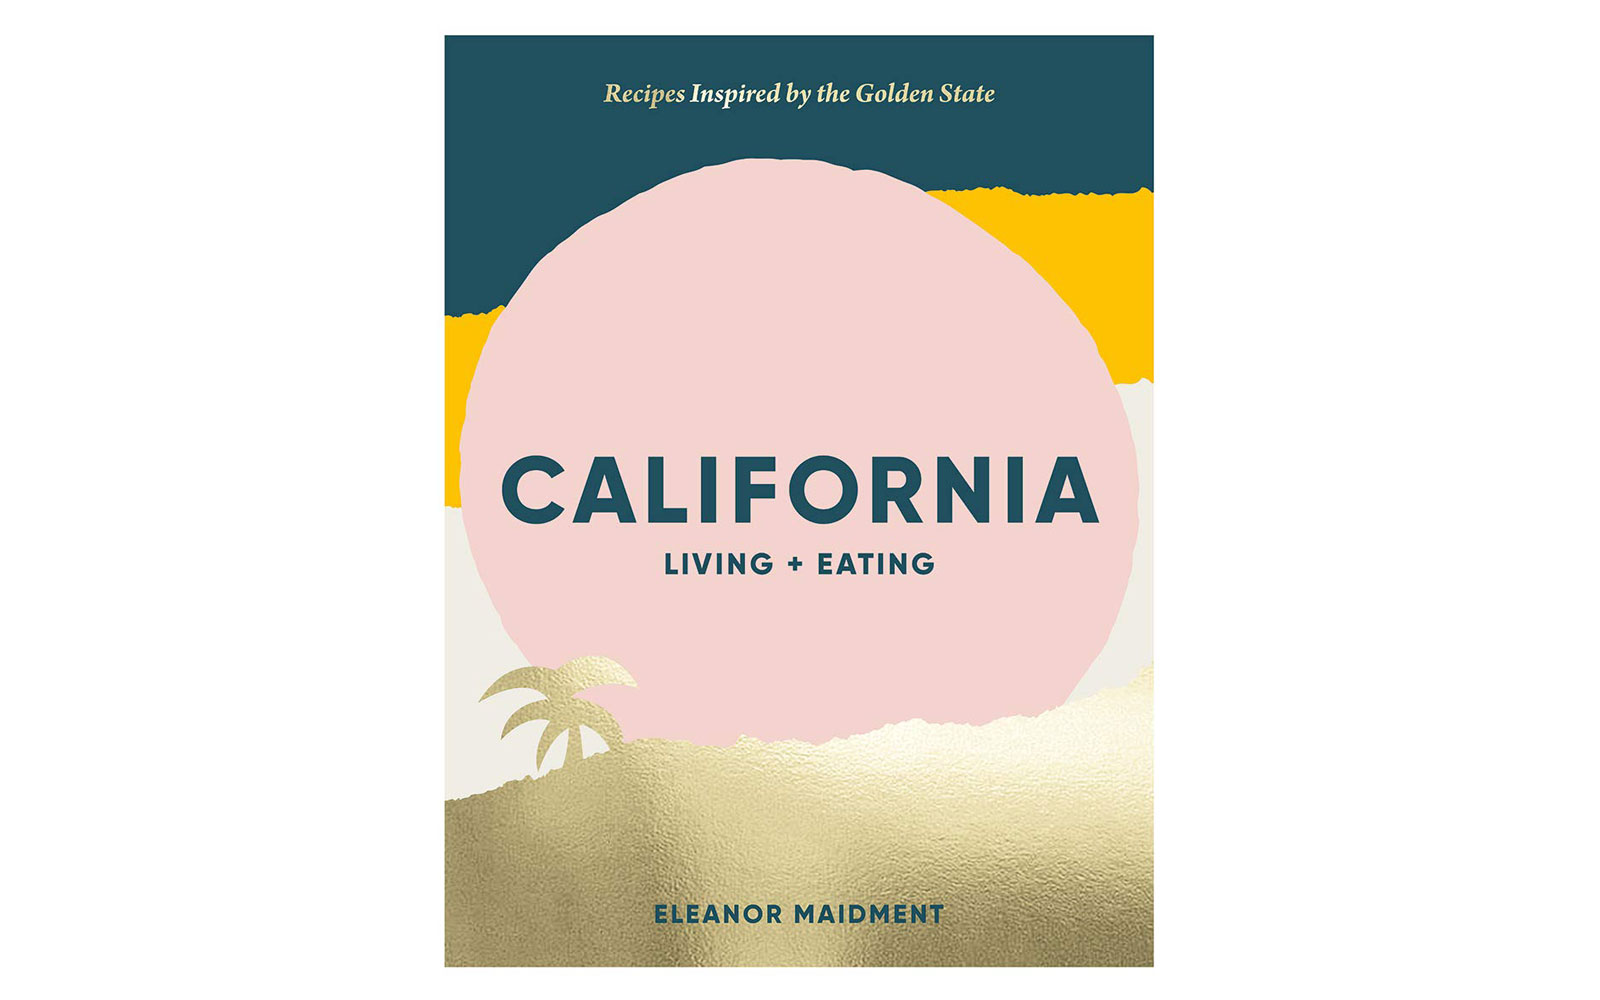 California Living + Eating cookbook